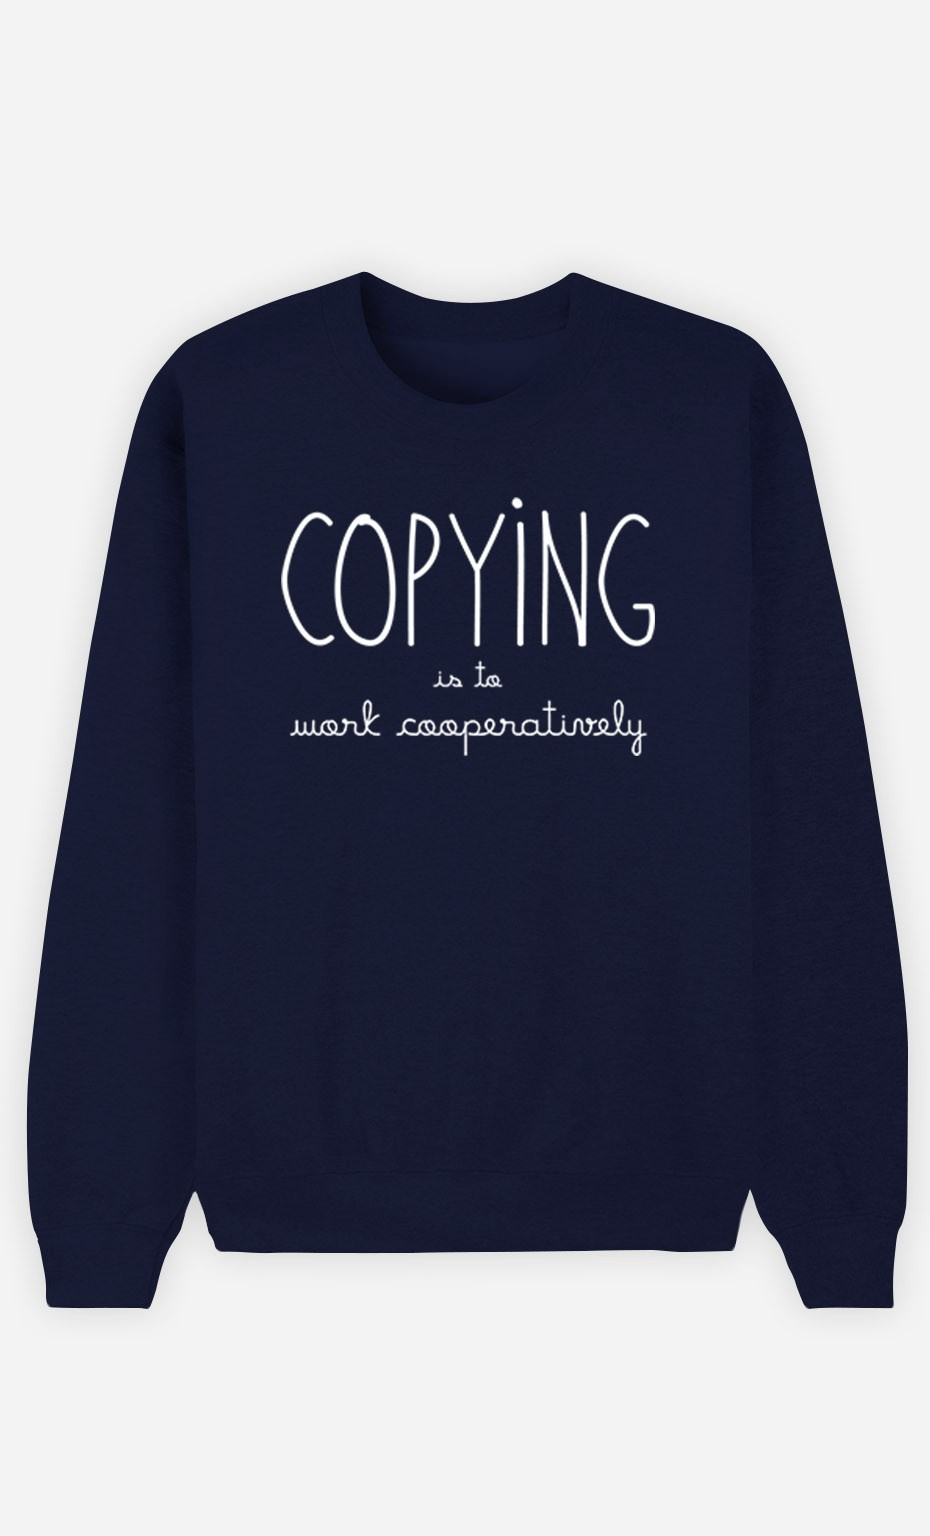 Blue Sweatshirt Copying is to Work Cooperatively